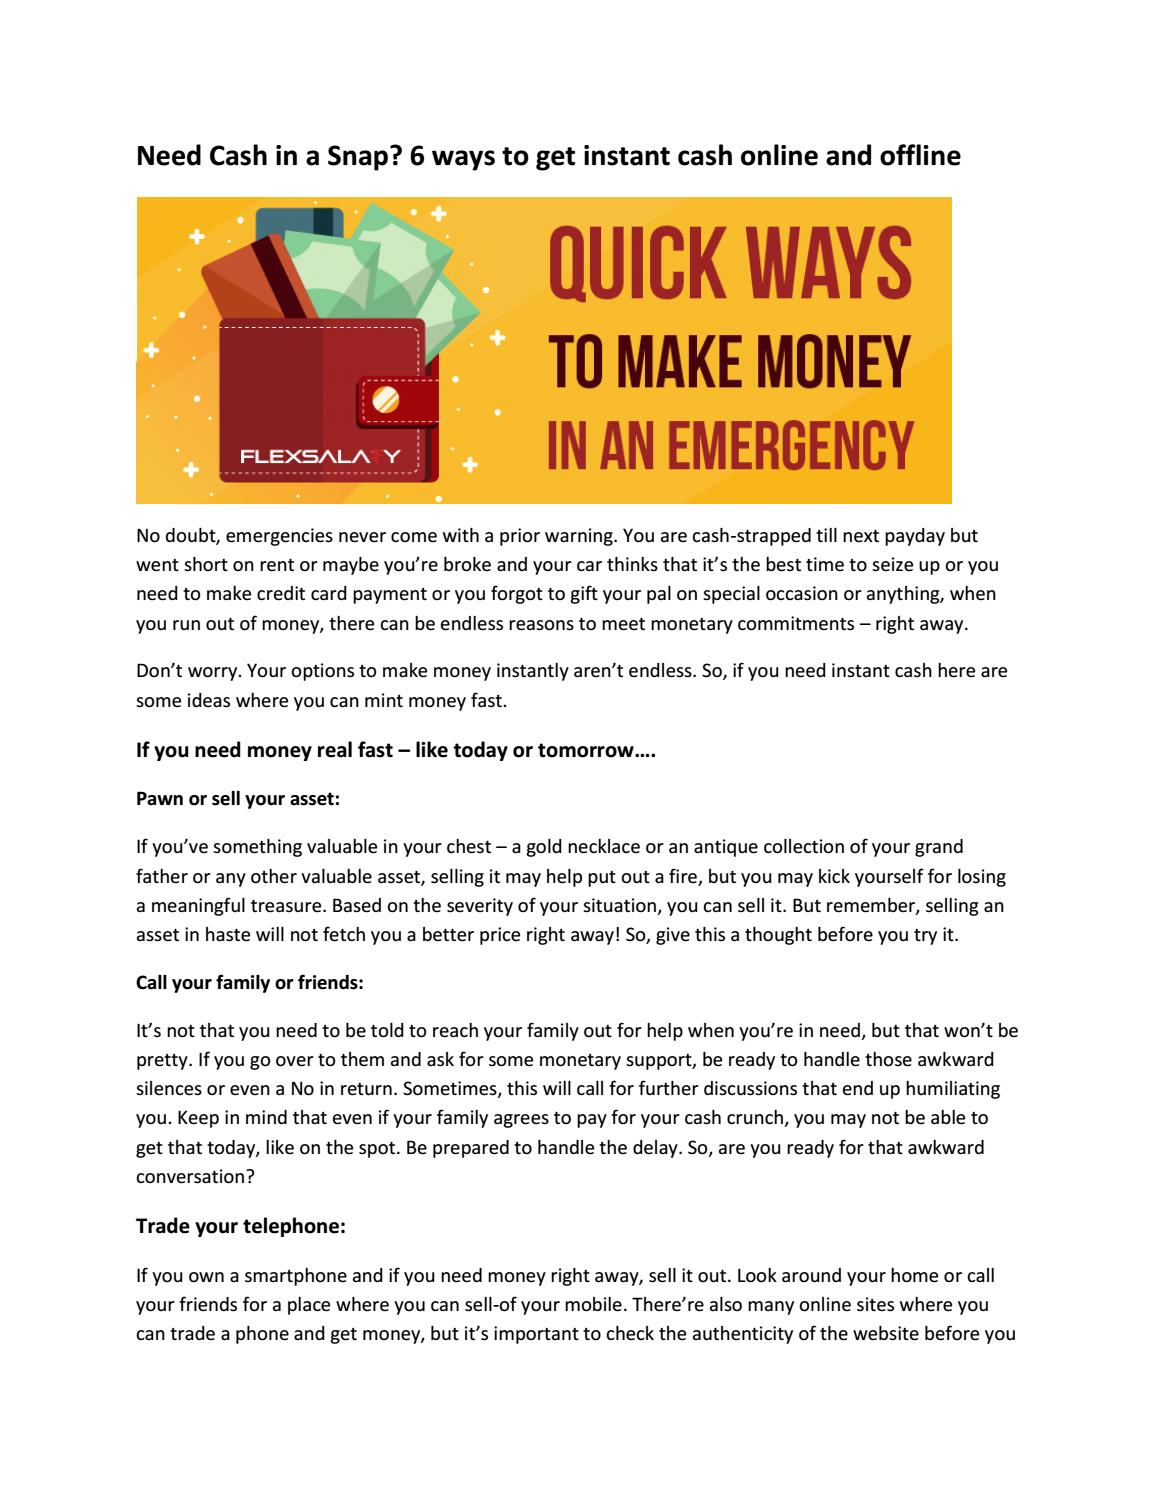 Need cash in a snap 6 ways to get instant cash online and